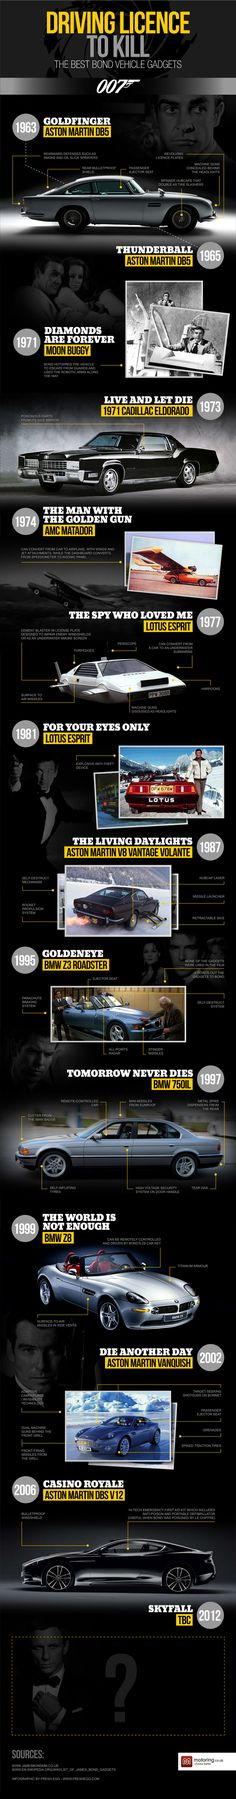 The Best Bond Vehicle Gadgets From The 007 Film Franchise